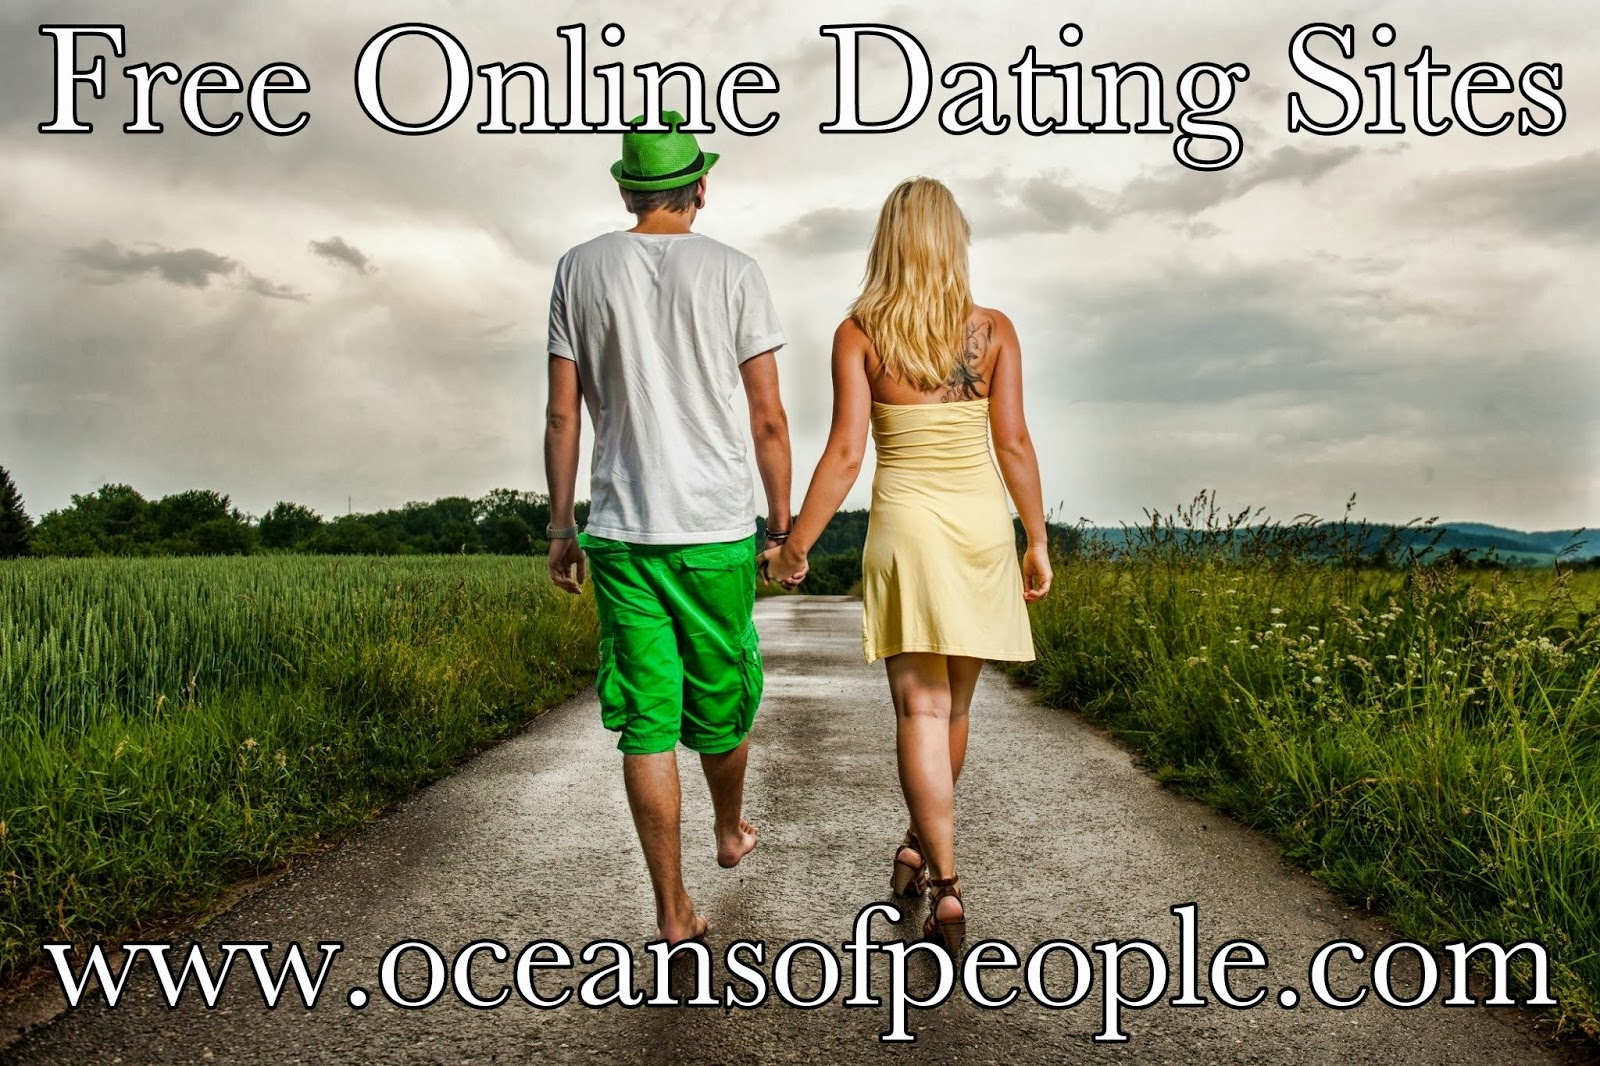 Largest dating sites online